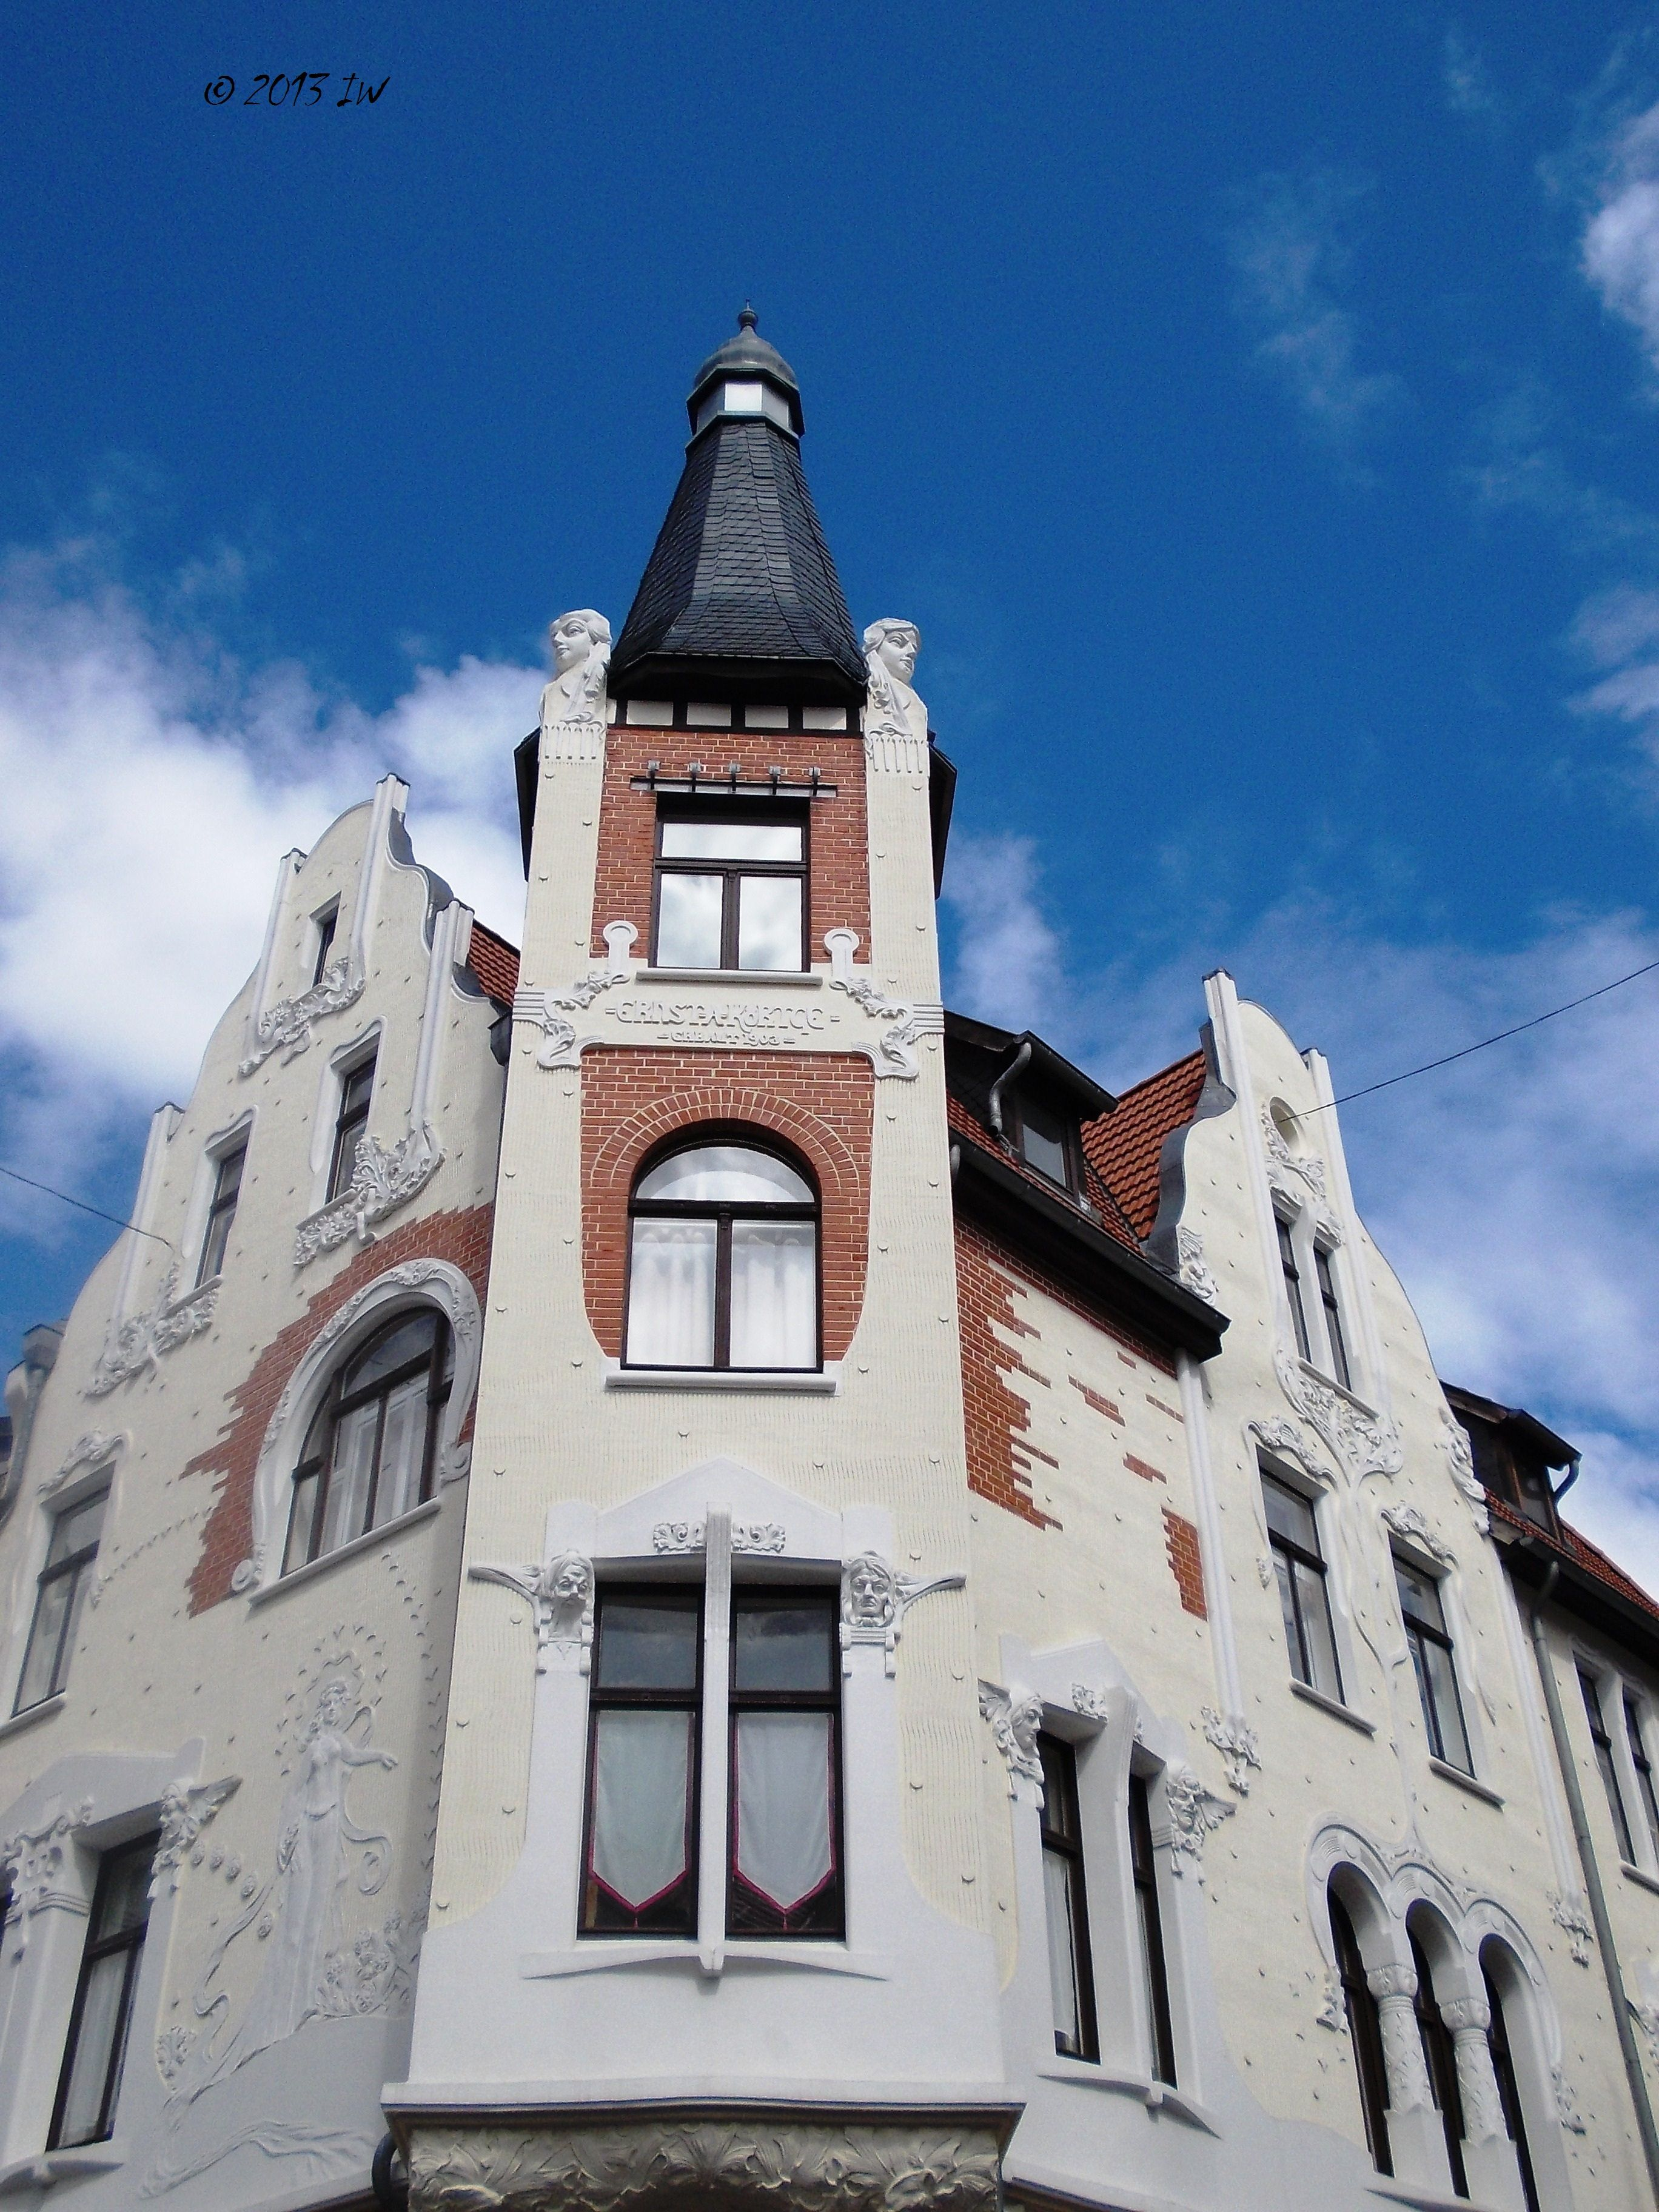 Beautiful Jugendstil architecture in Quedlinburg. I was pleasantly surprised to discover many interesting buildings with the finest decorations. For a couple of seconds, I dreamed I am in Vienna.